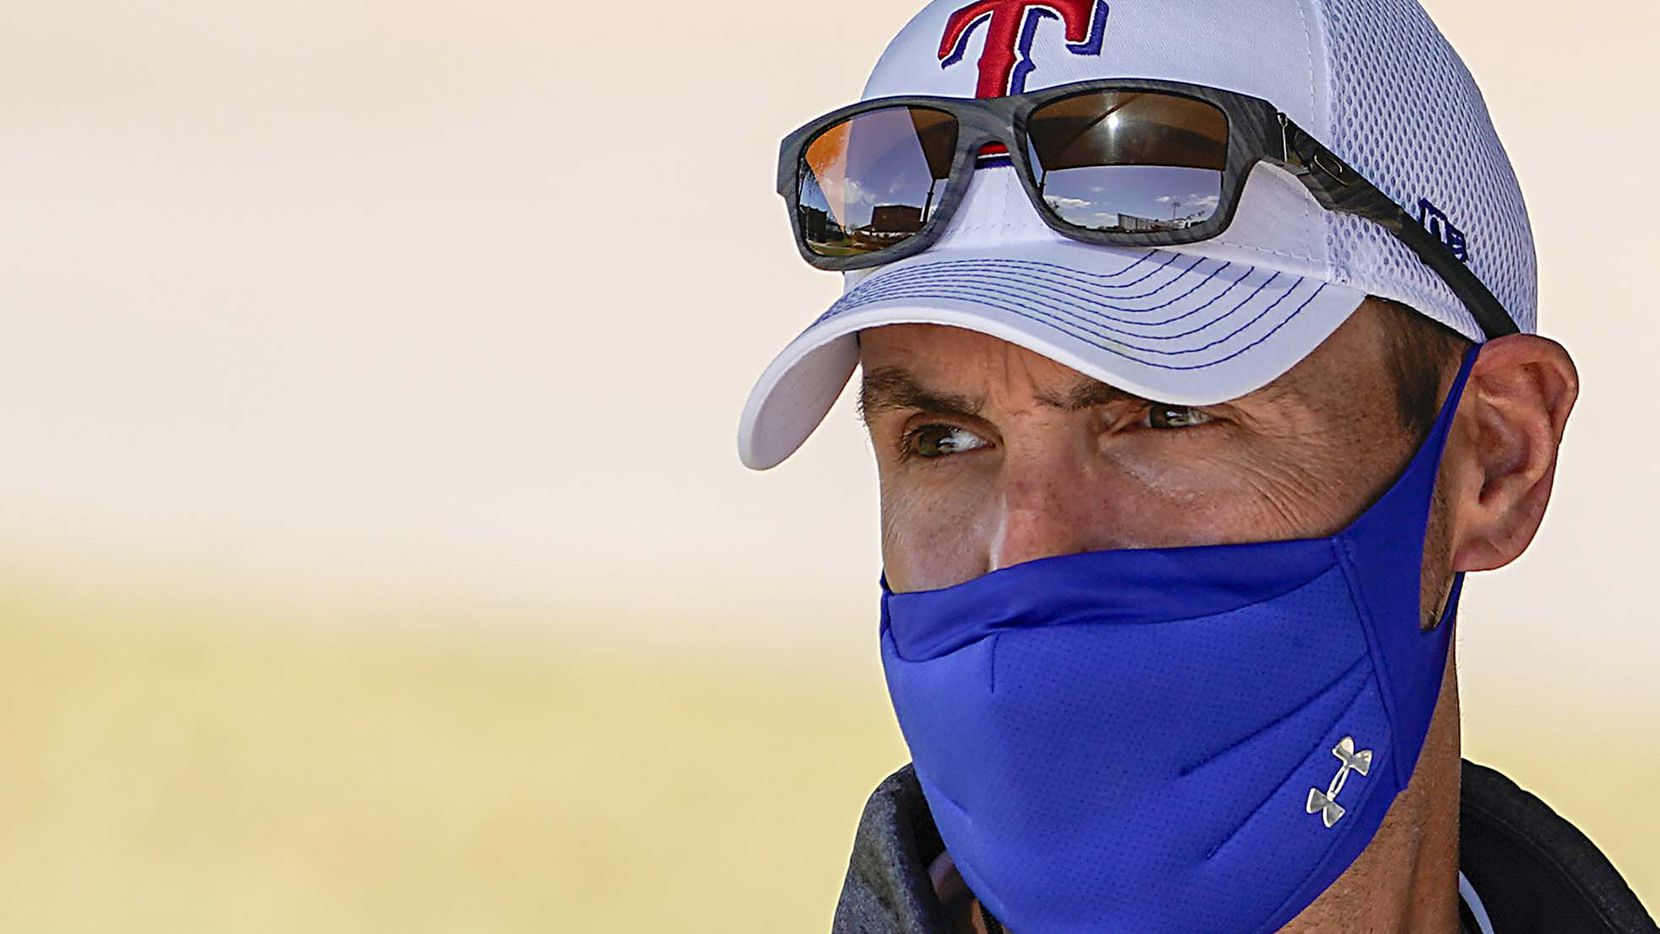 Texas Rangers executive vice president & general manager Chris Young watches during a spring training workout at the team's training facility on Saturday, March 6, 2021, in Surprise, Ariz.